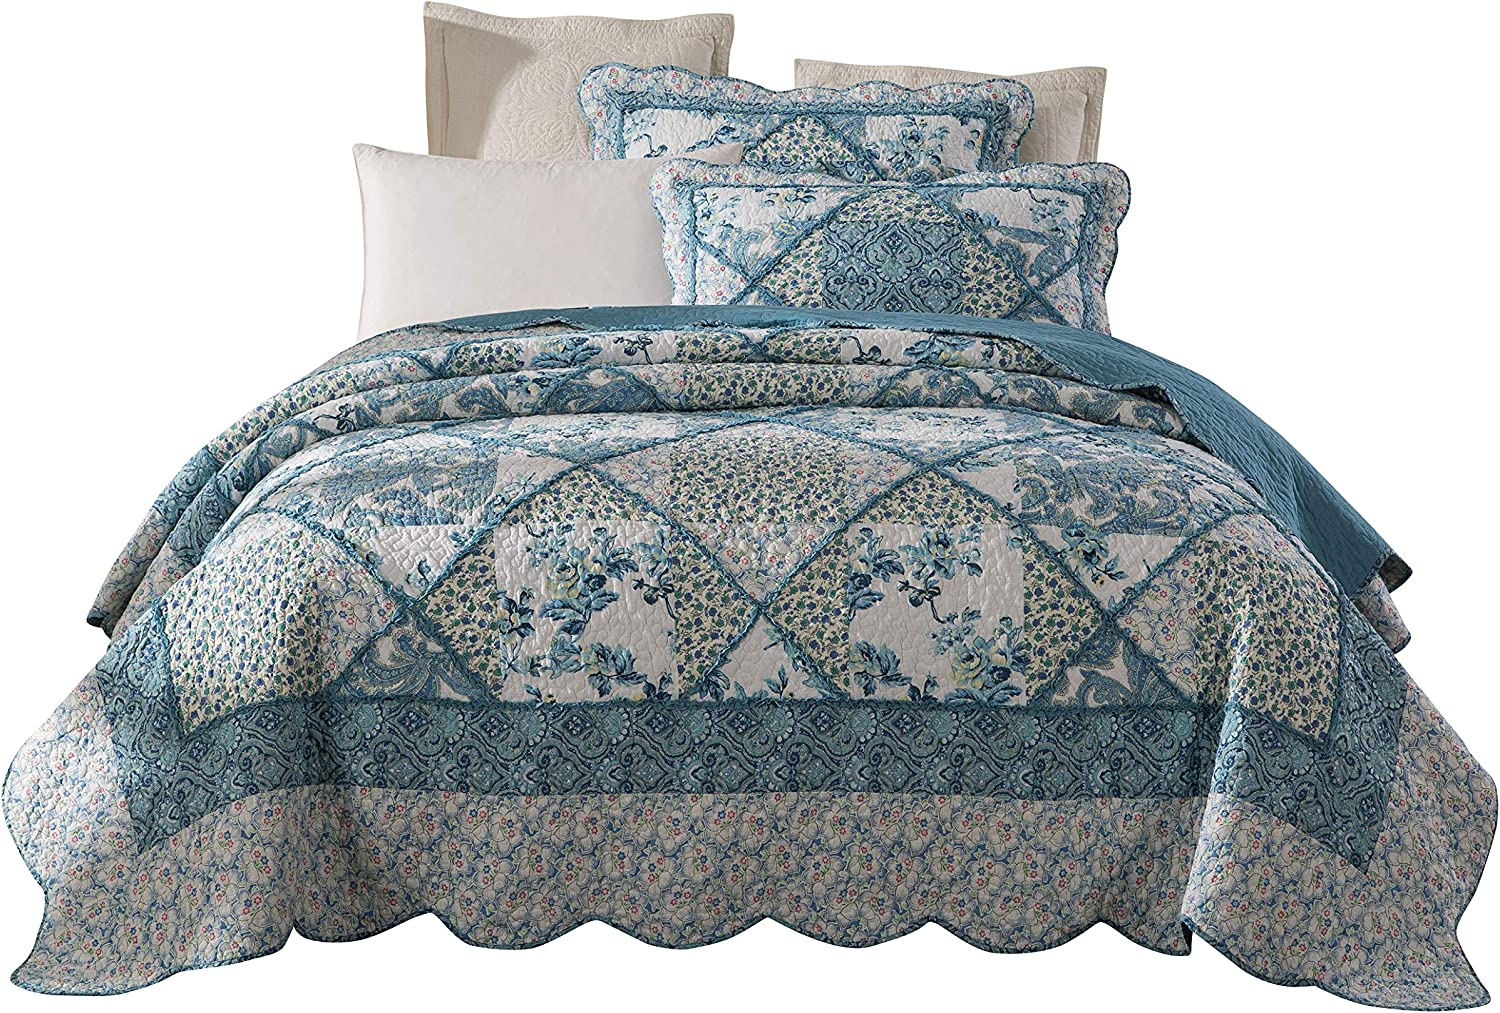 Country Farmhouse Blue Quilt Pattern Cotton Fabric Material